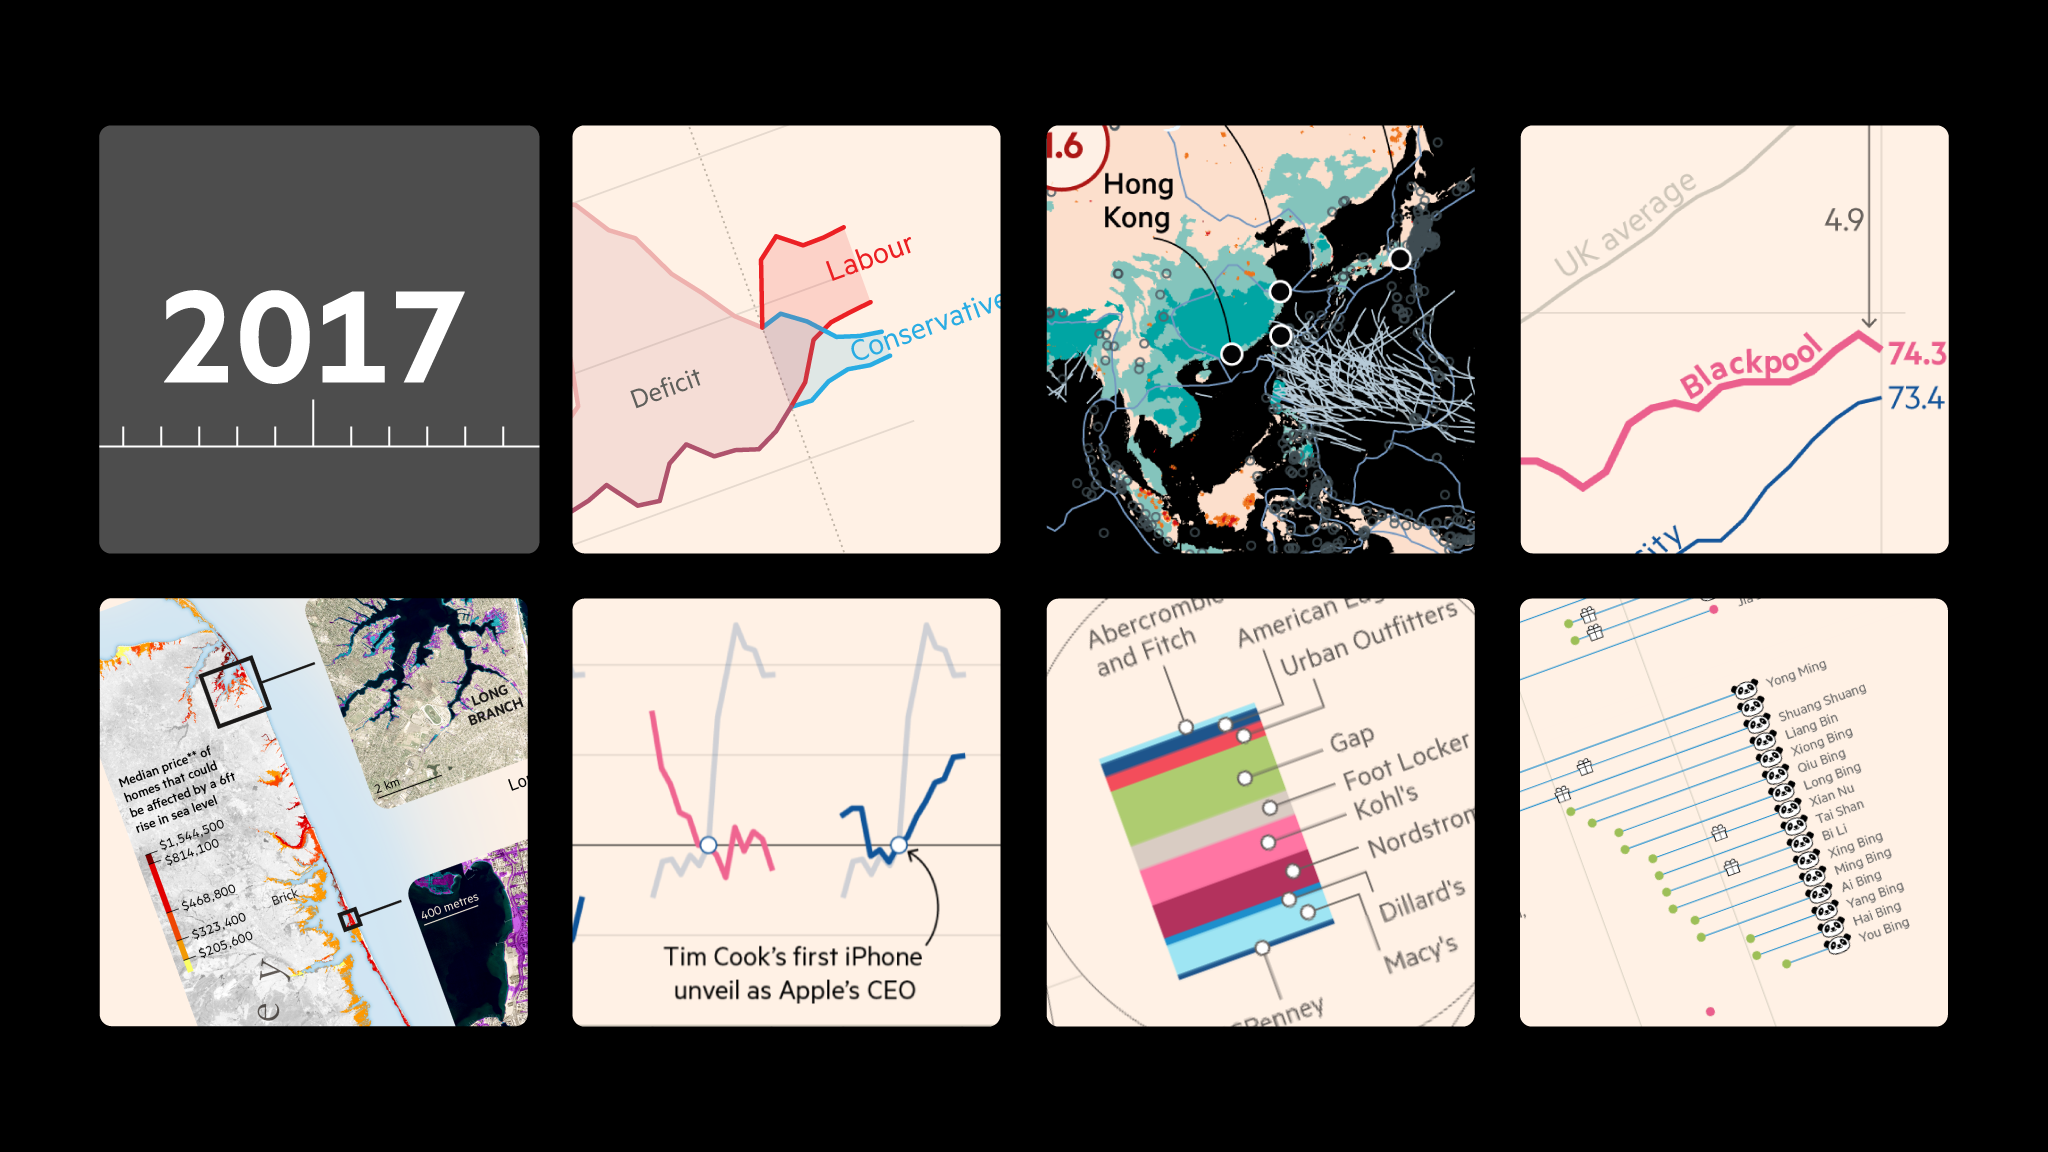 Design Secrets Behind The Fts Best Charts Of The Year Financial Times